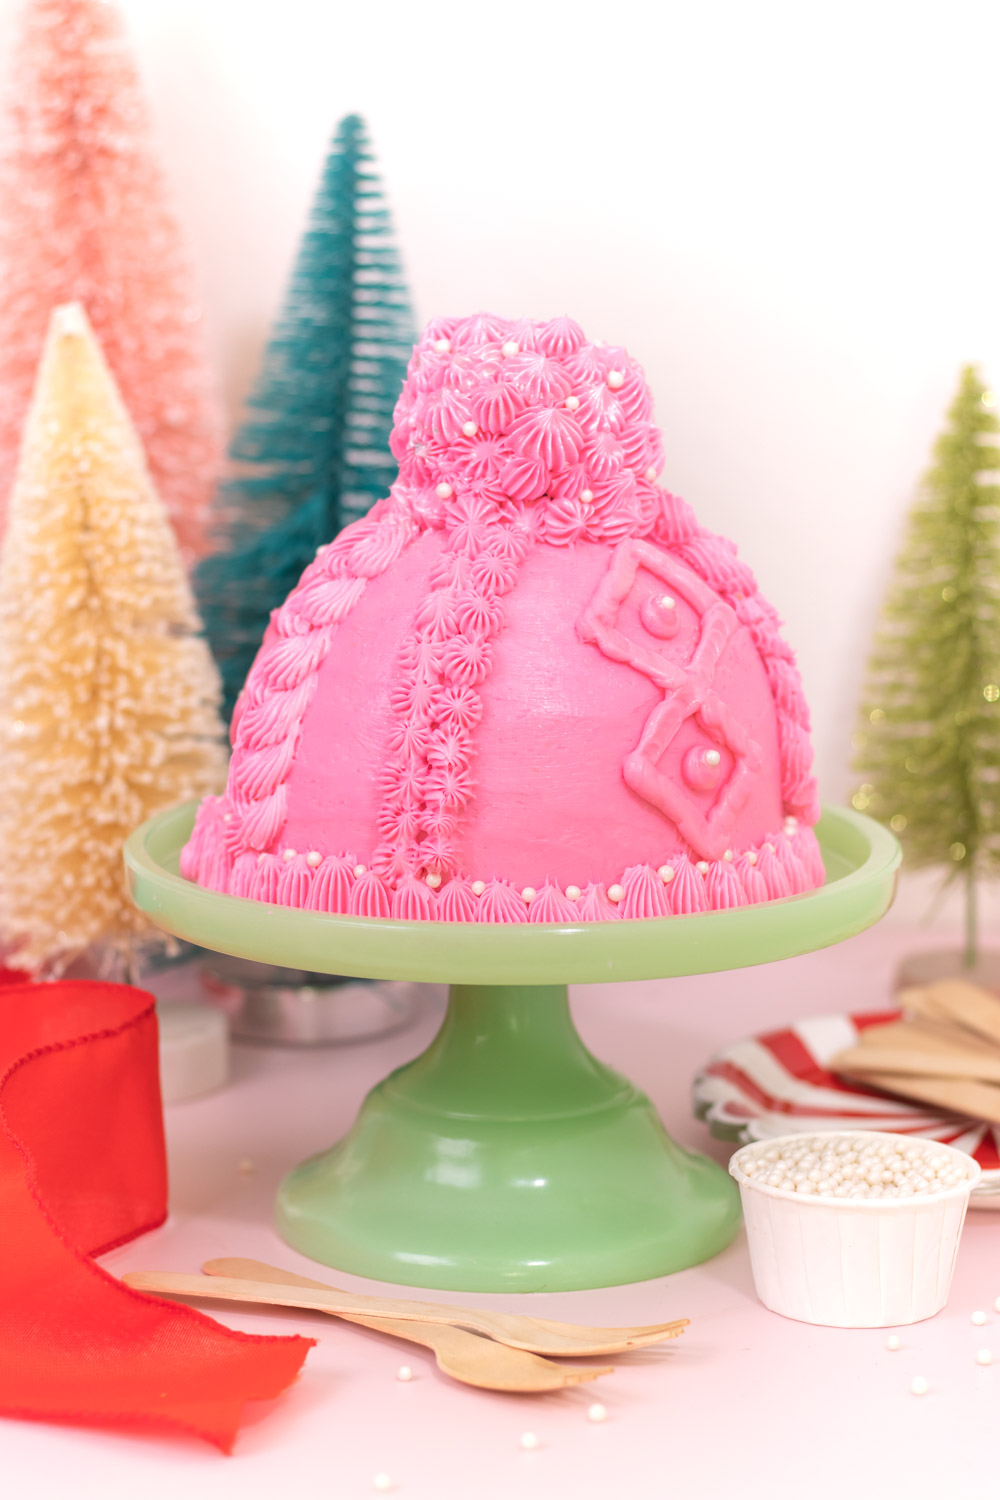 knit beanie cake on cake stand in front of christmas trees